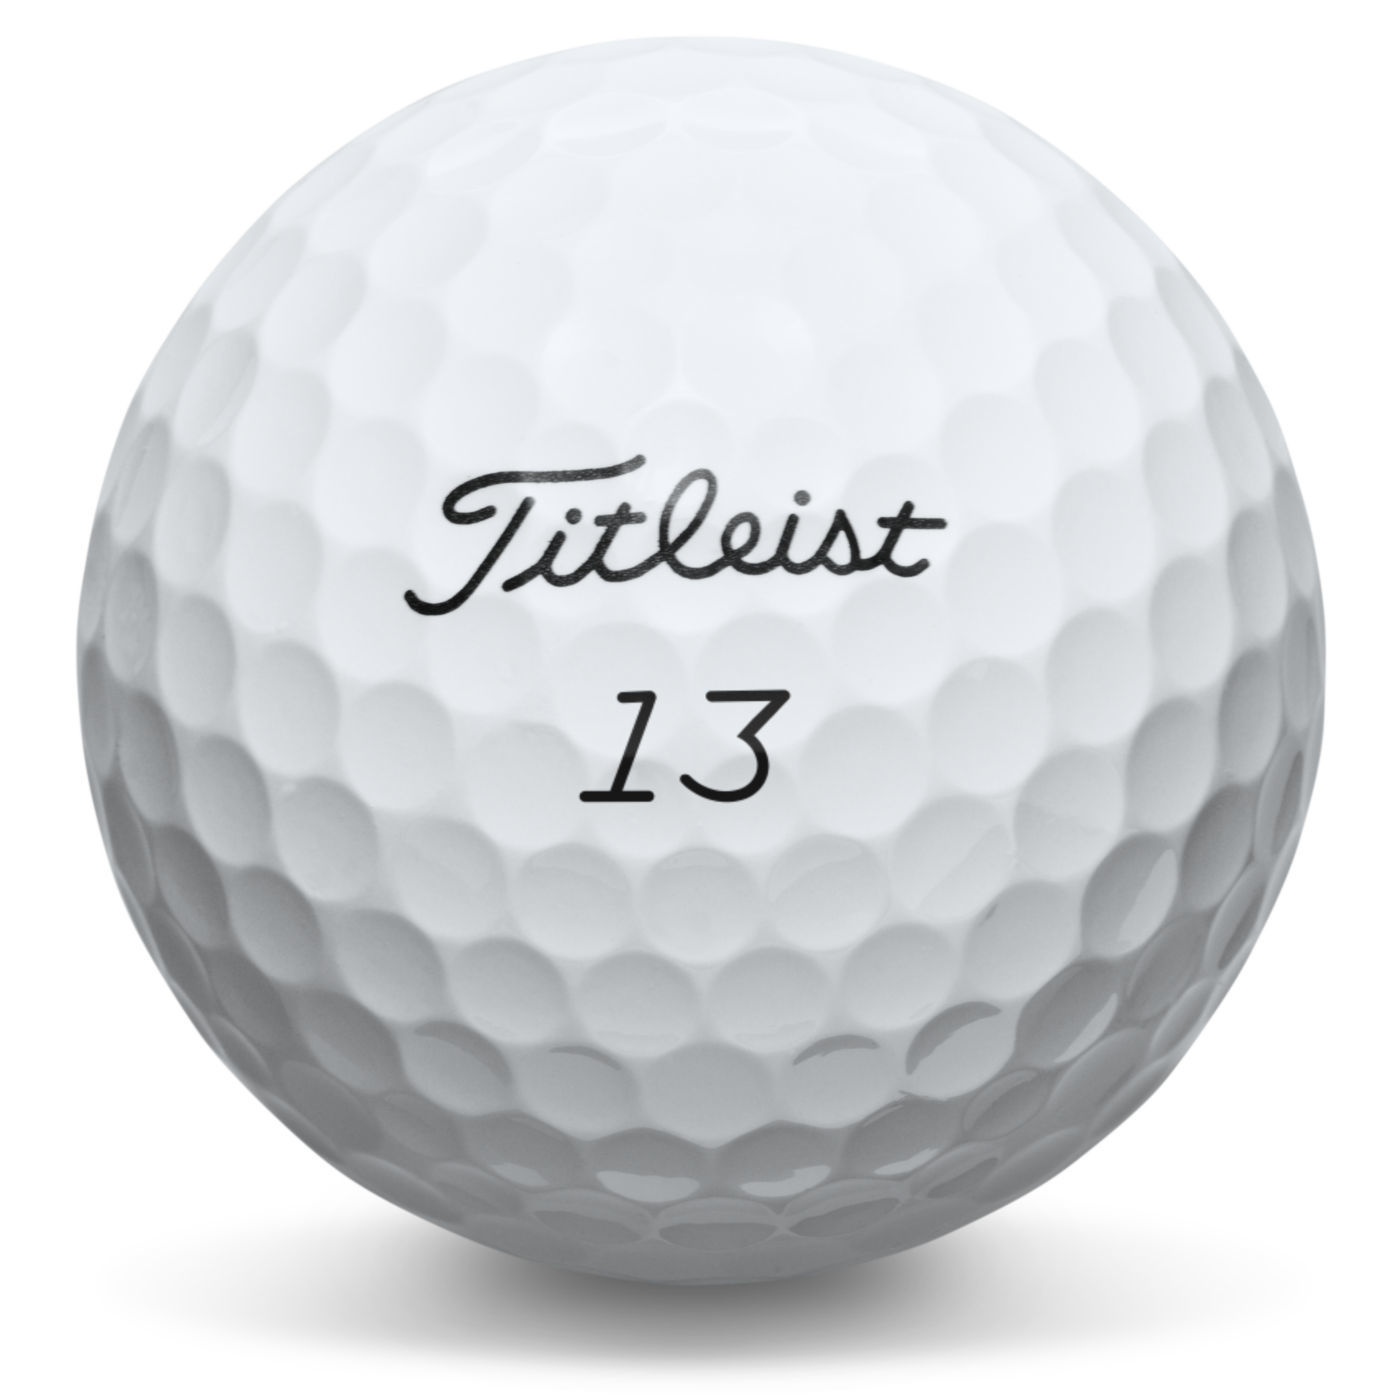 https://www.best4balls.com/pub/media/catalog/product/p/r/pro_v1_special_play_13.jpg